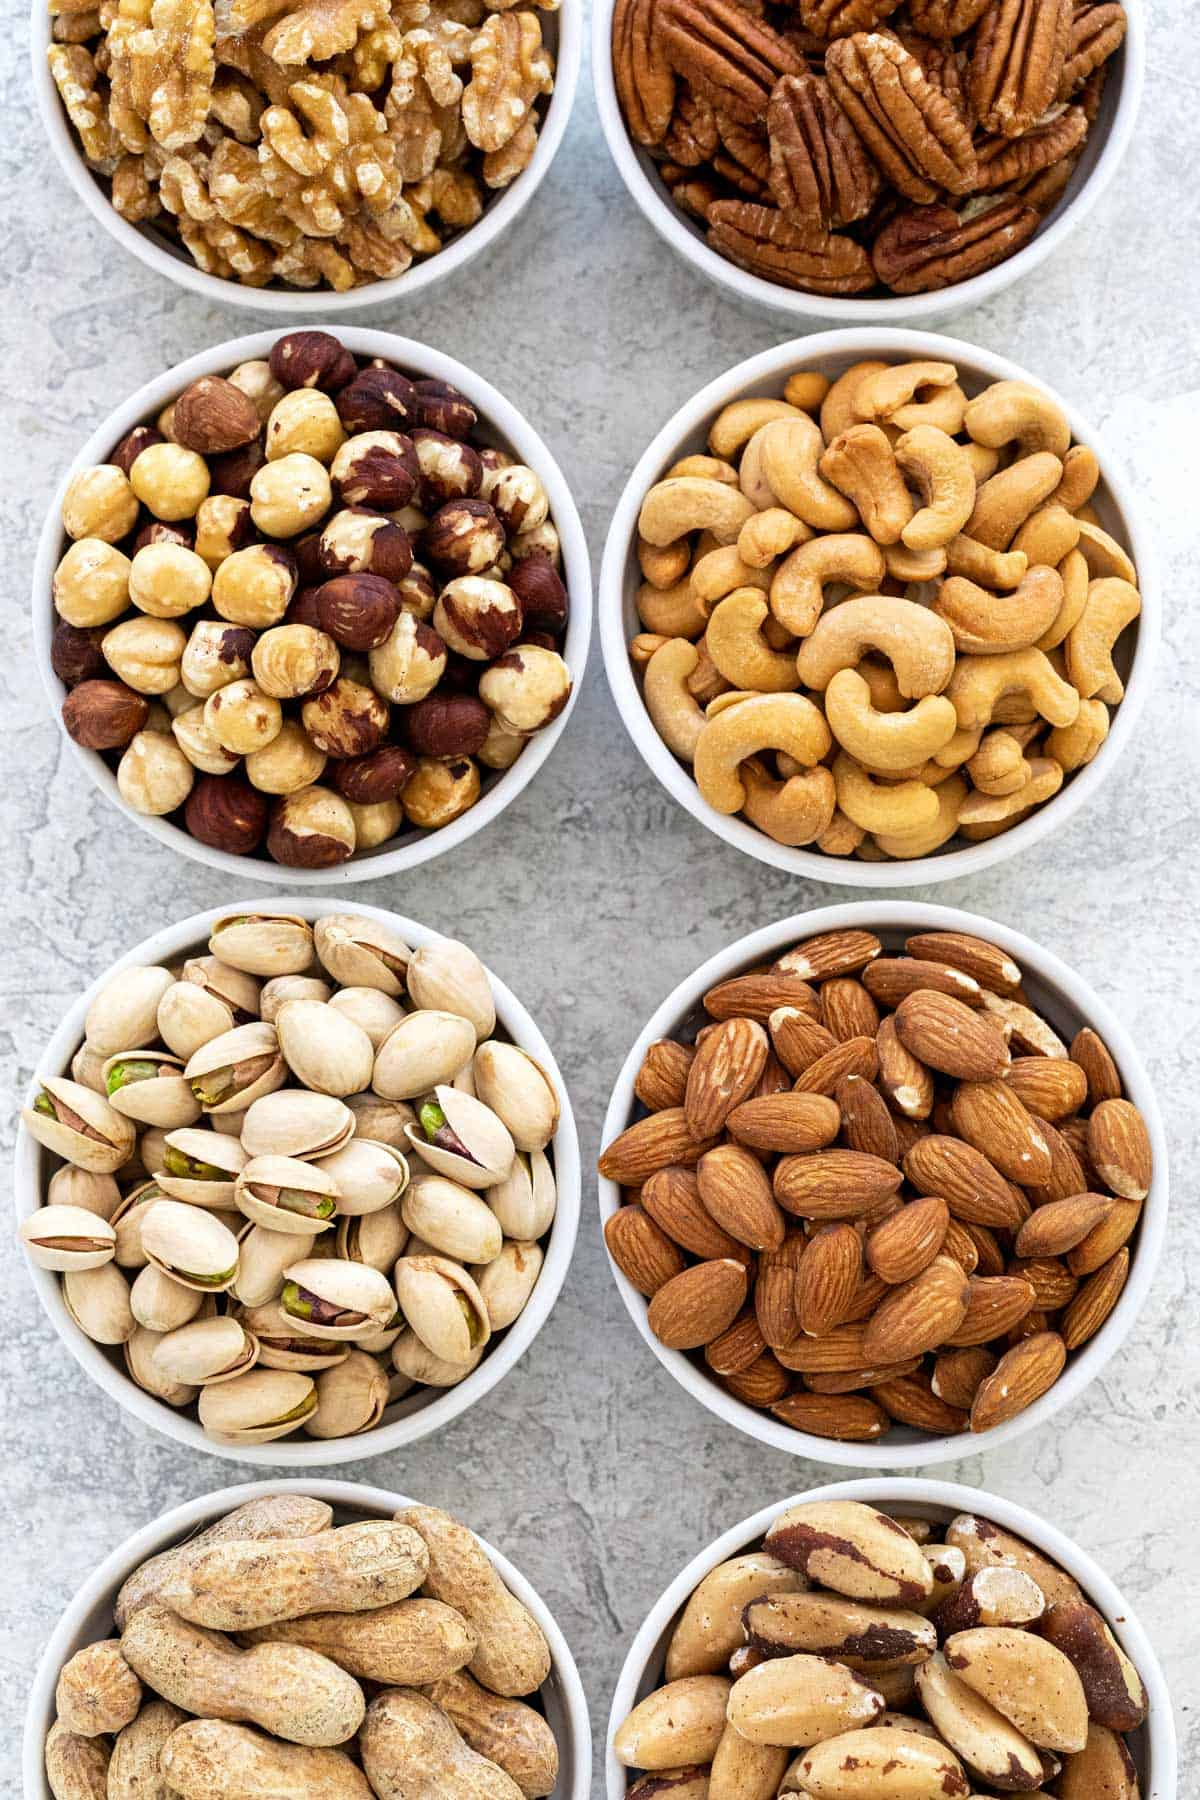 15 Common Types of Nuts - Jessica Gavin